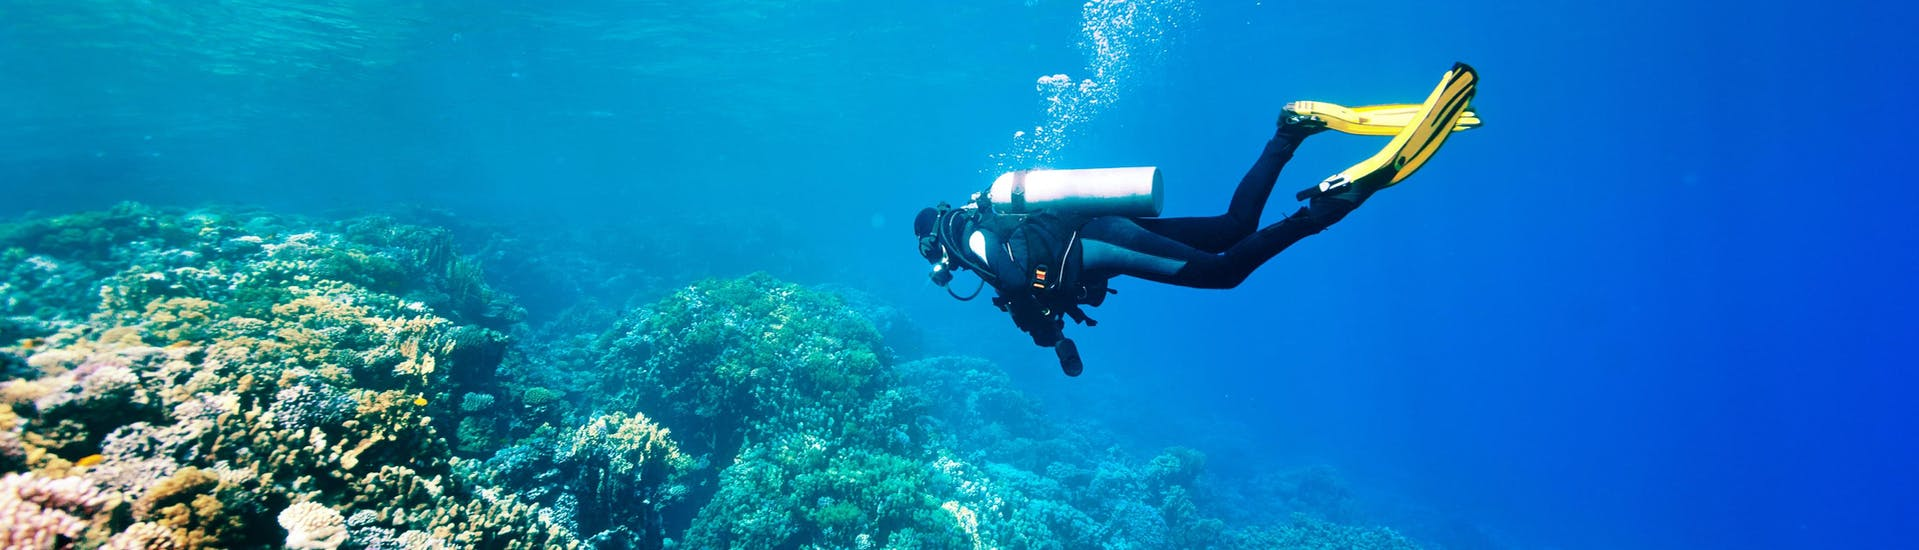 A scuba diver is exploring a reef while scuba diving in the scuba diving destination of Croatia.